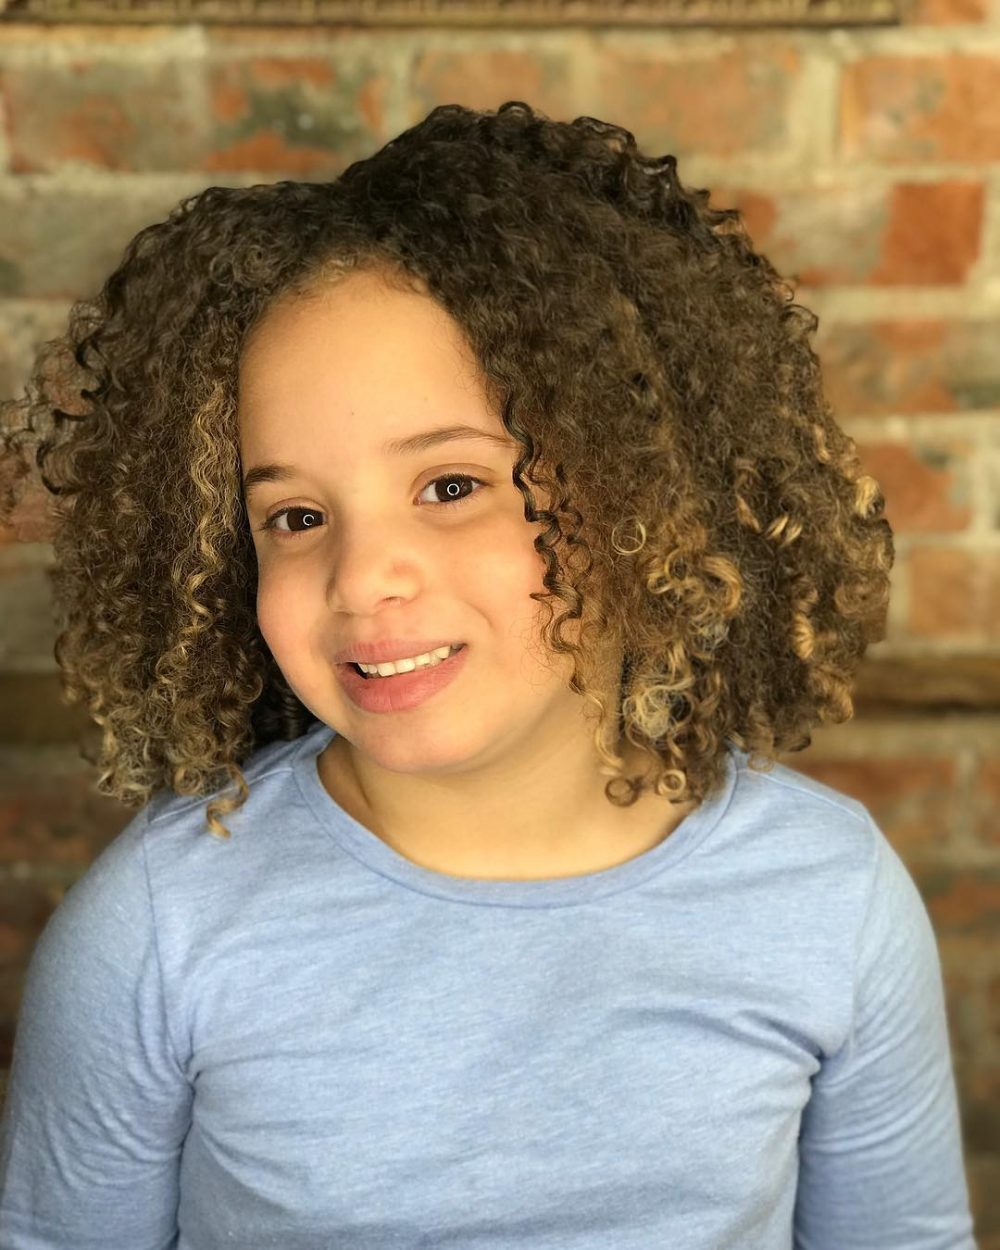 21 Easy Hairstyles For Girls With Curly Hair Little Girls